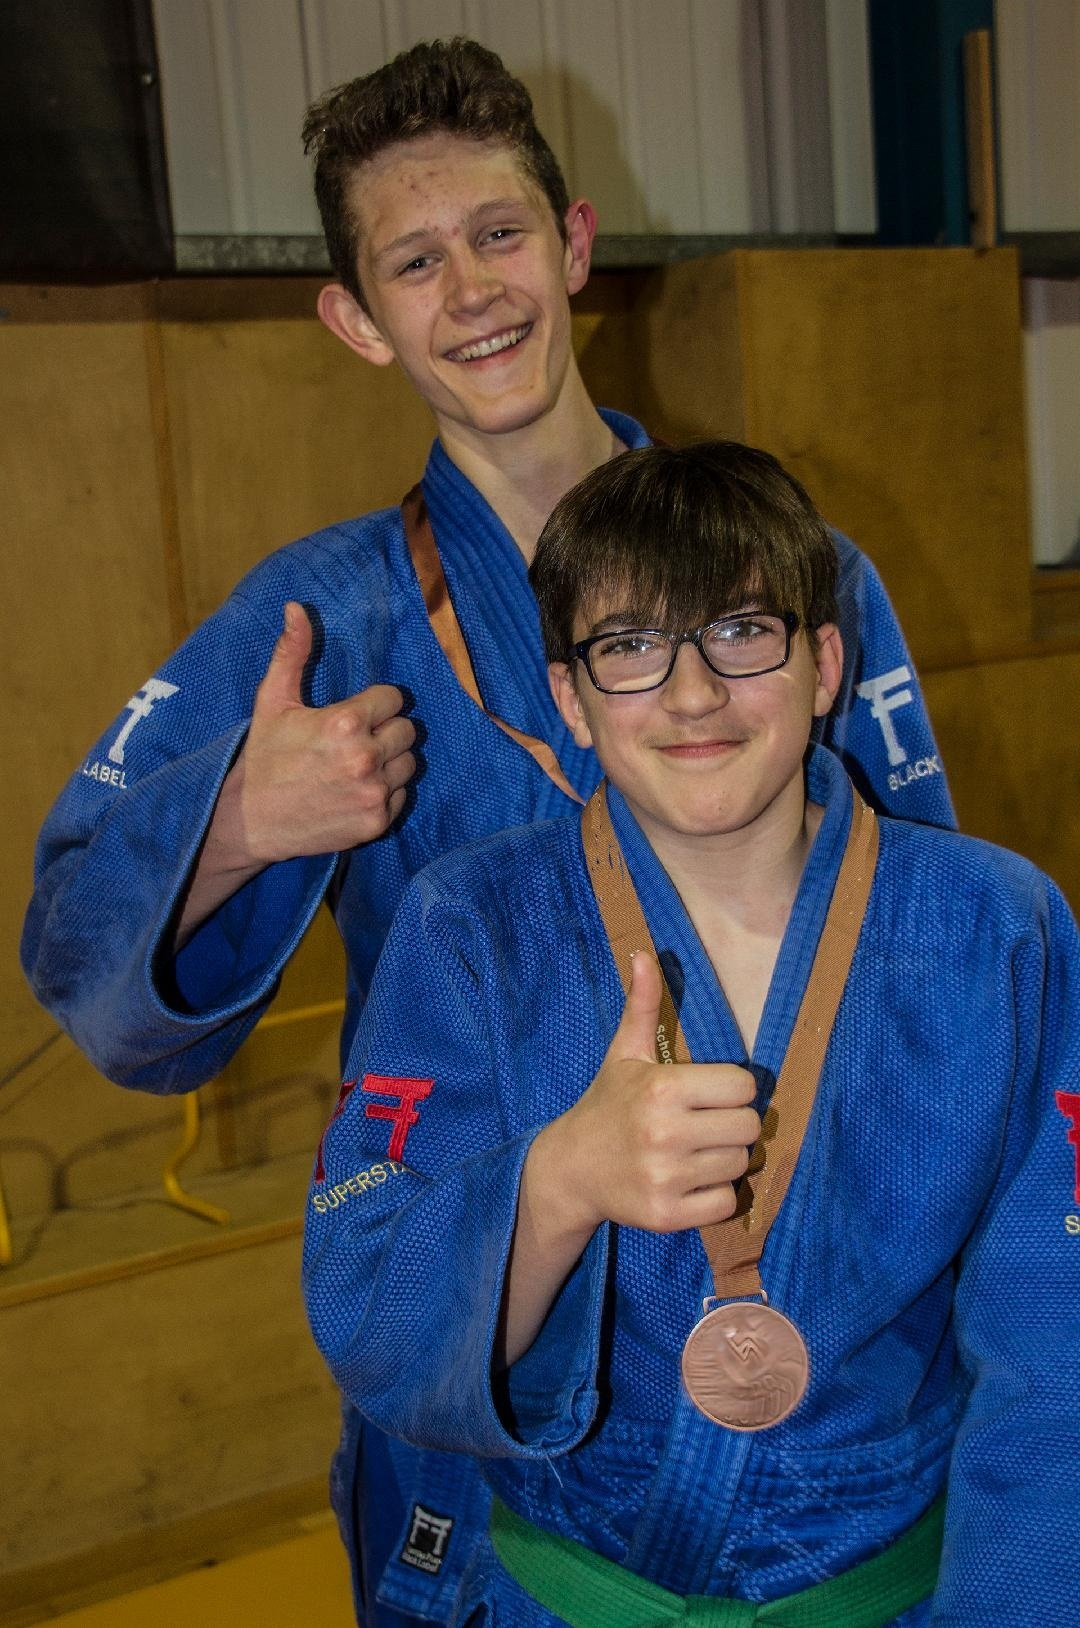 Nye Greasley, front, and Nathan O'Sullivan with their medals